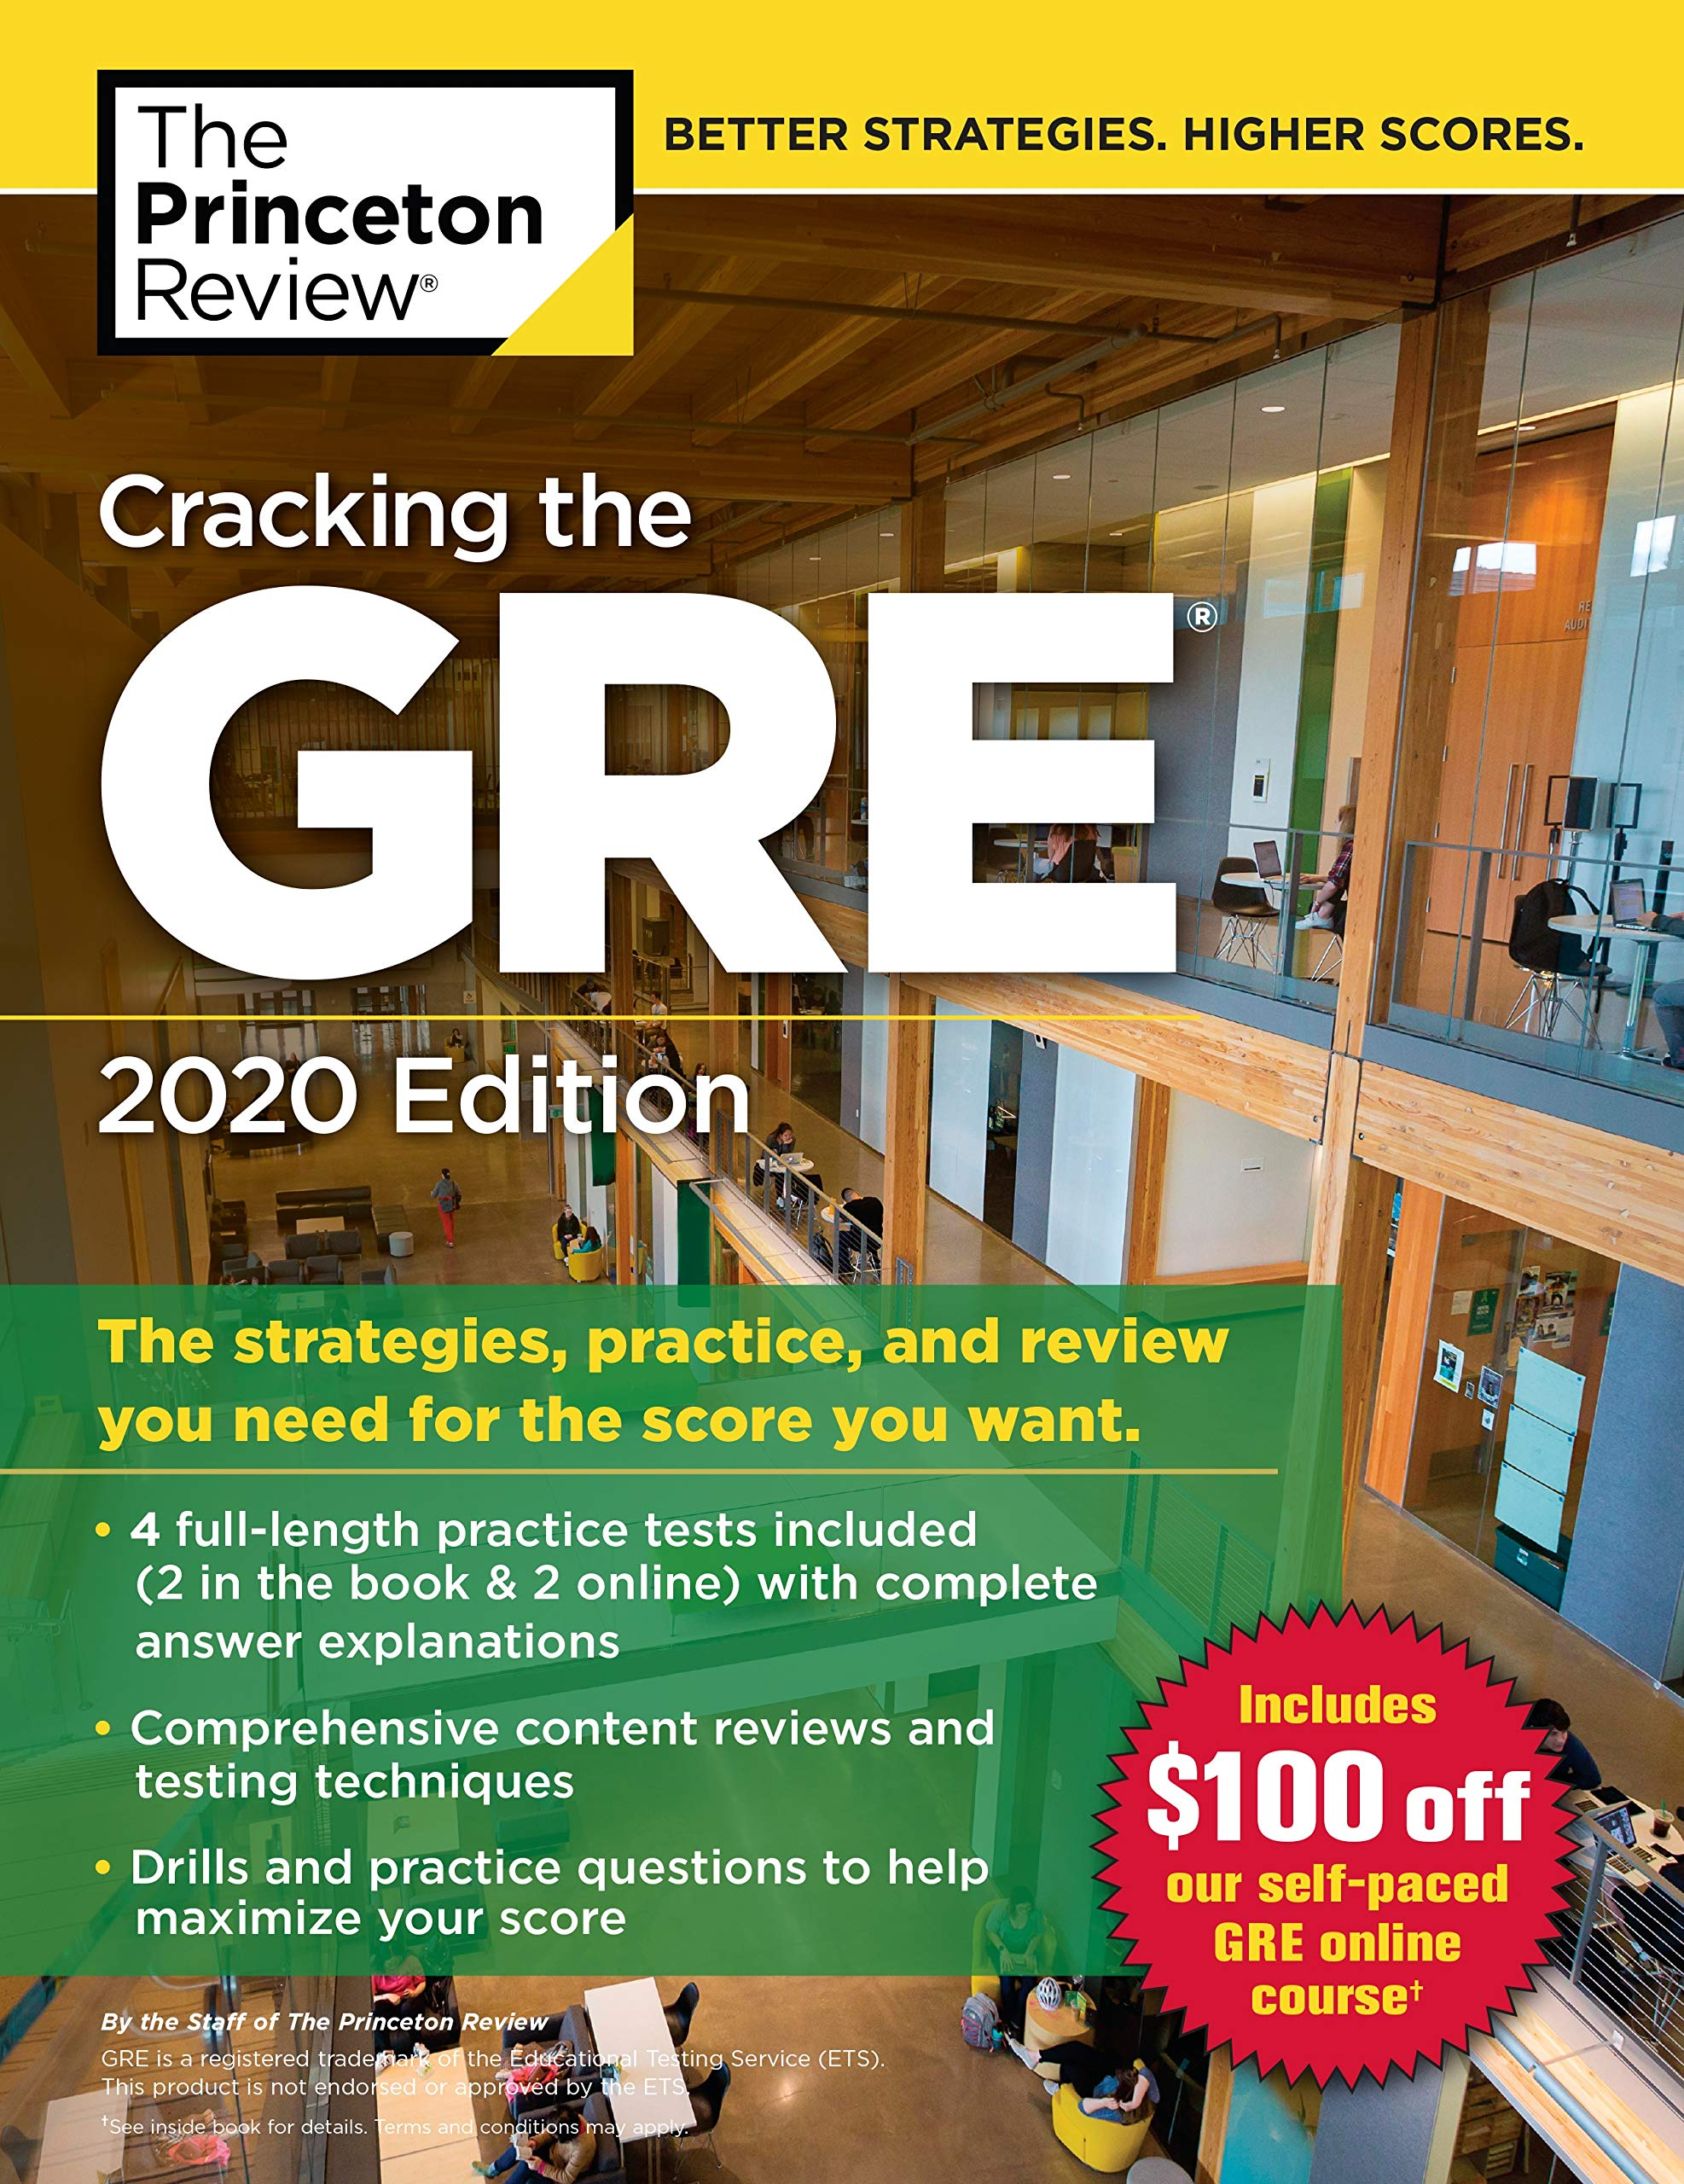 Image OfCracking The GRE With 4 Practice Tests, 2020 Edition: The Strategies, Practice, And Review You Need For The Score You Want...